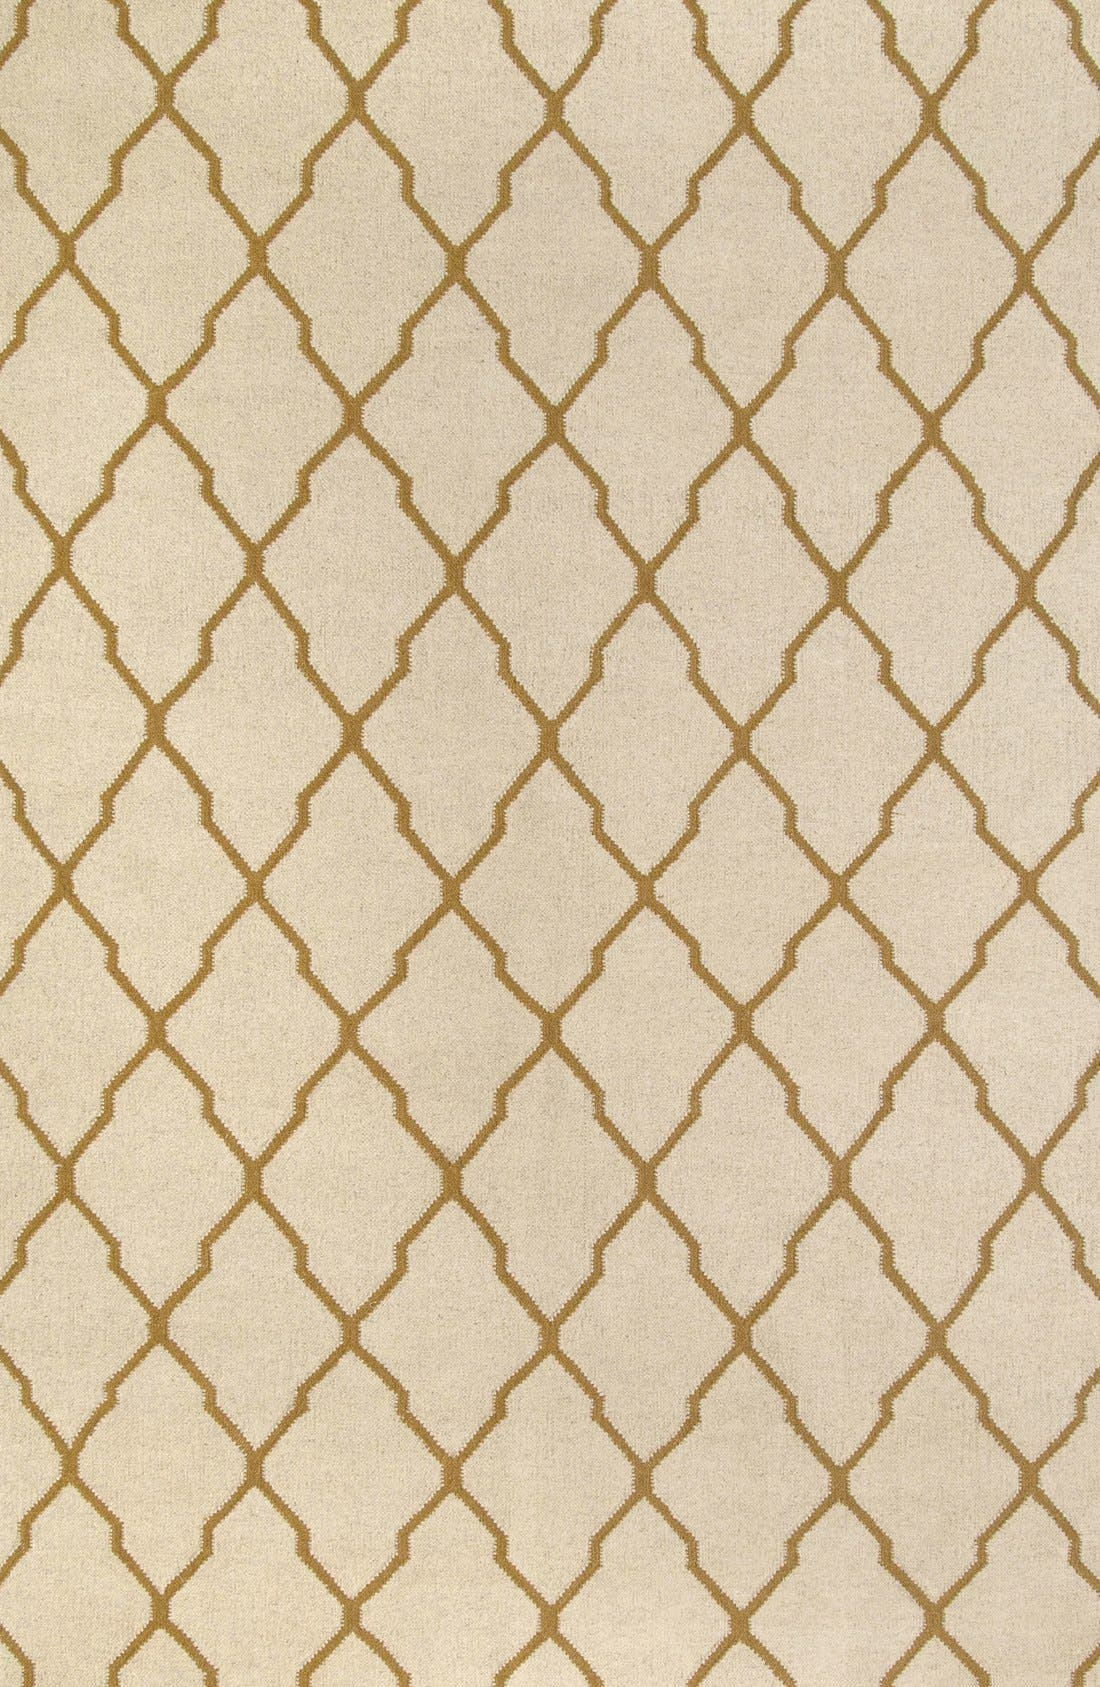 Alternate Image 1 Selected - Rizzy Home Quatrefoil Wool Rug